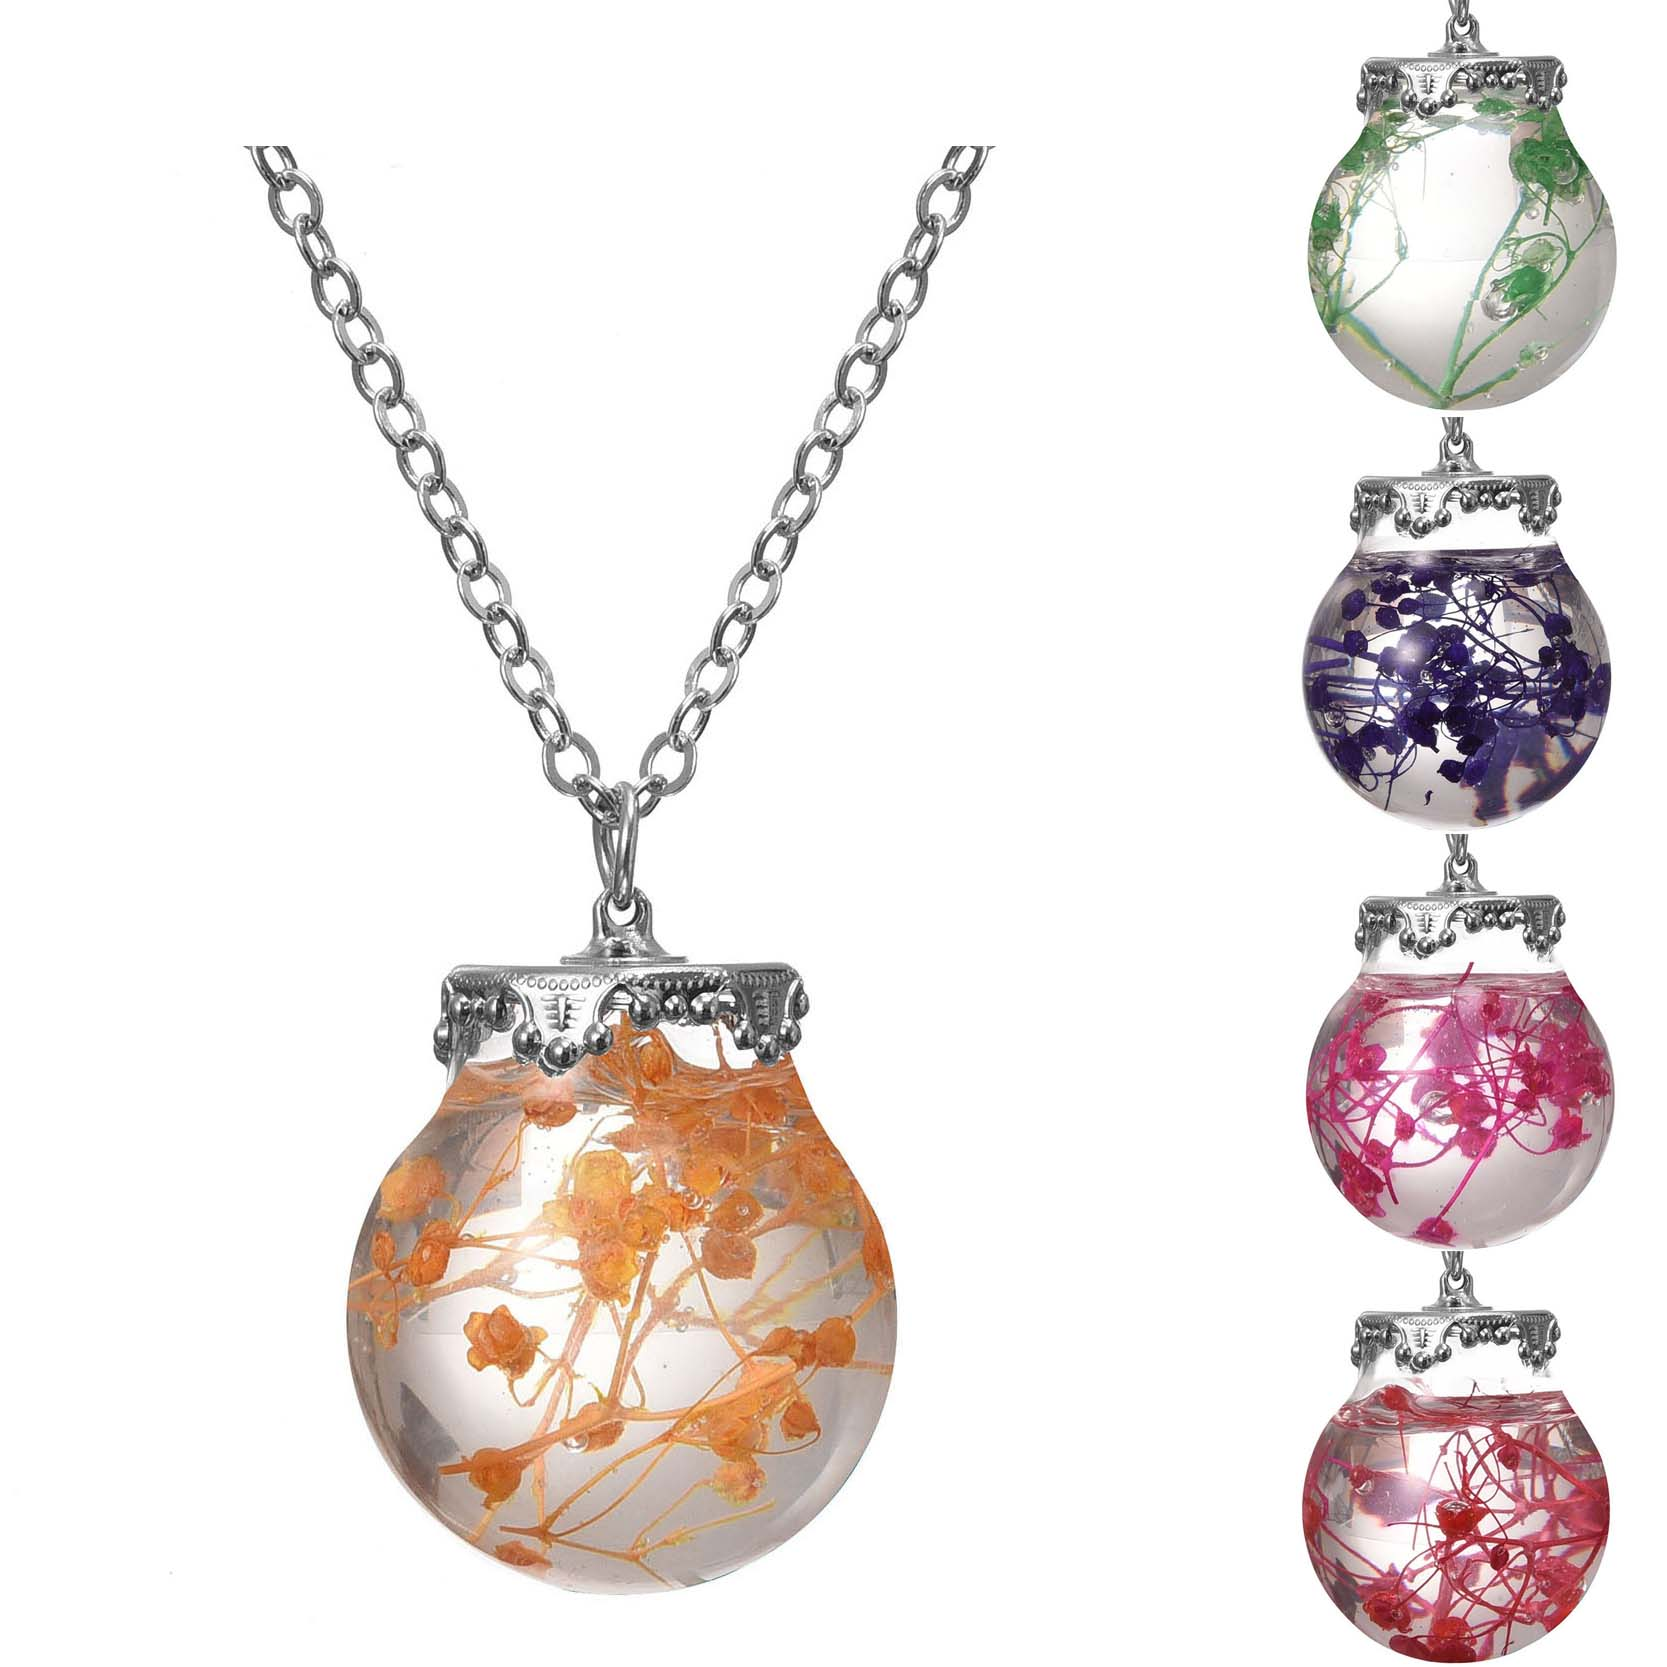 2017 Jewelry Necklace Silver Plated with Glass Bottle Sea Ocean Life Dried Flower Choker Long Pendant Necklace for Women(China)